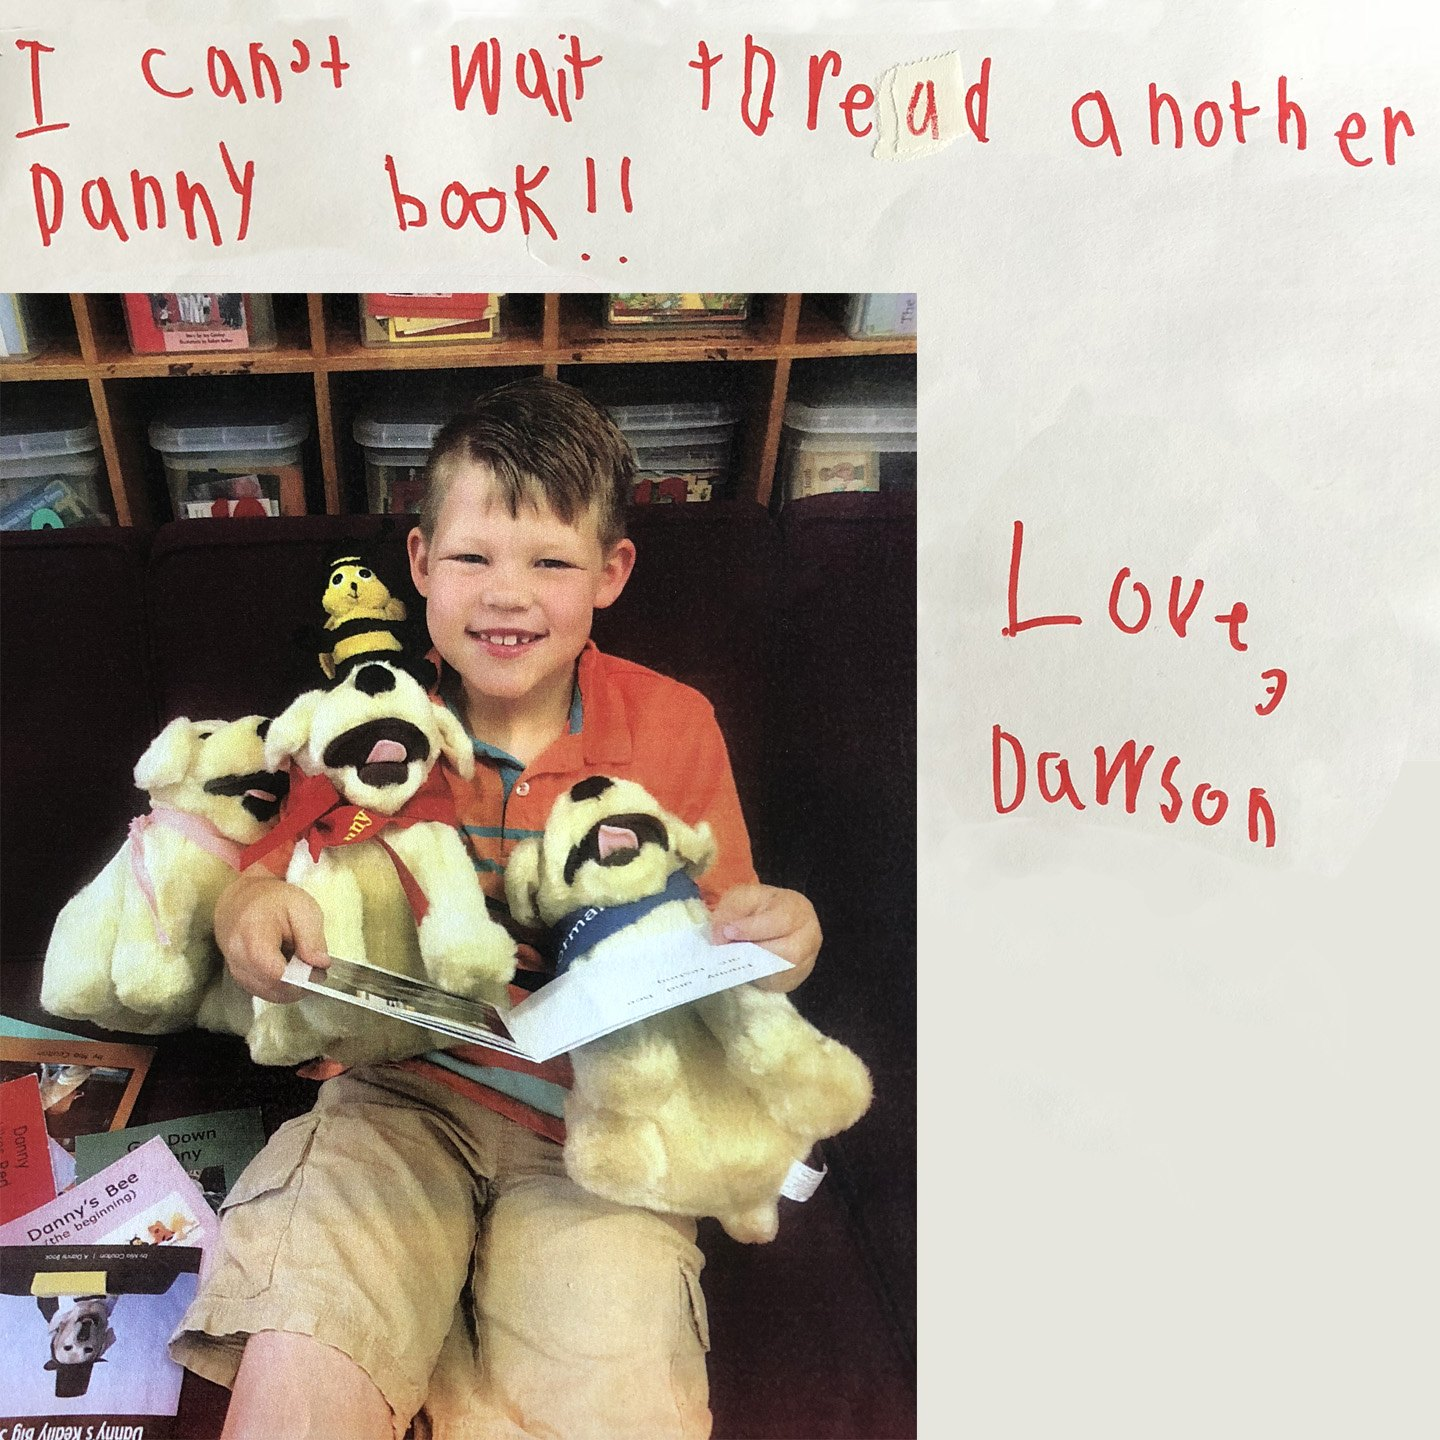 Dawson says he can't wait to read another Danny book.